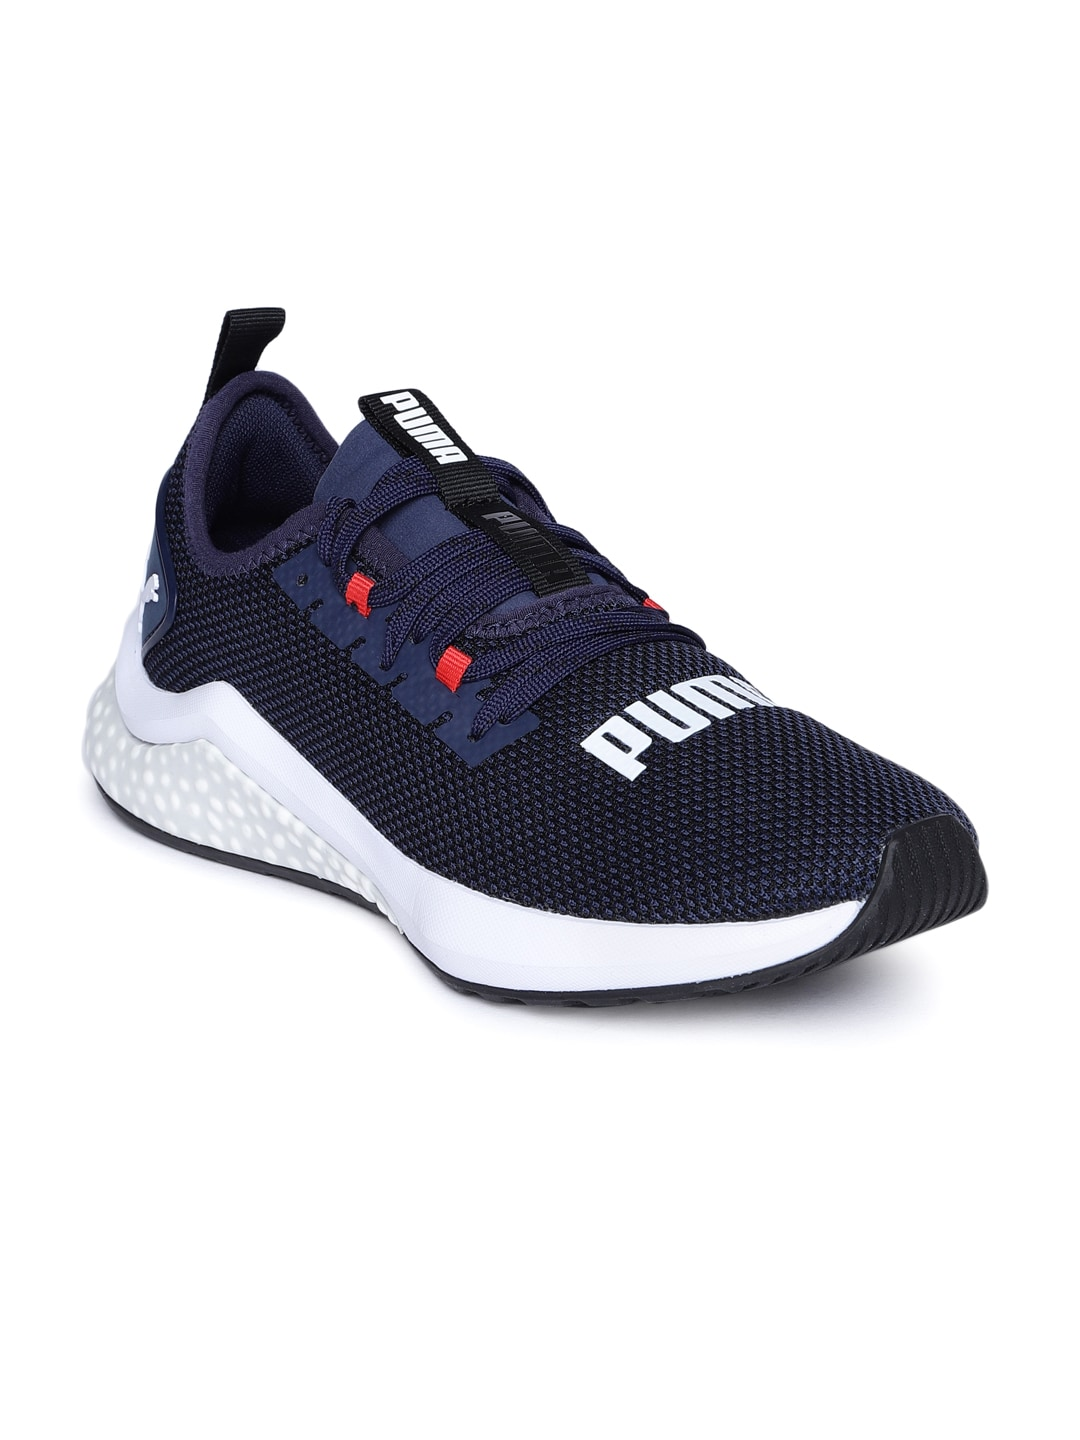 96ae384050d Long Distance Running Shoes - Buy Long Distance Running Shoes online in  India